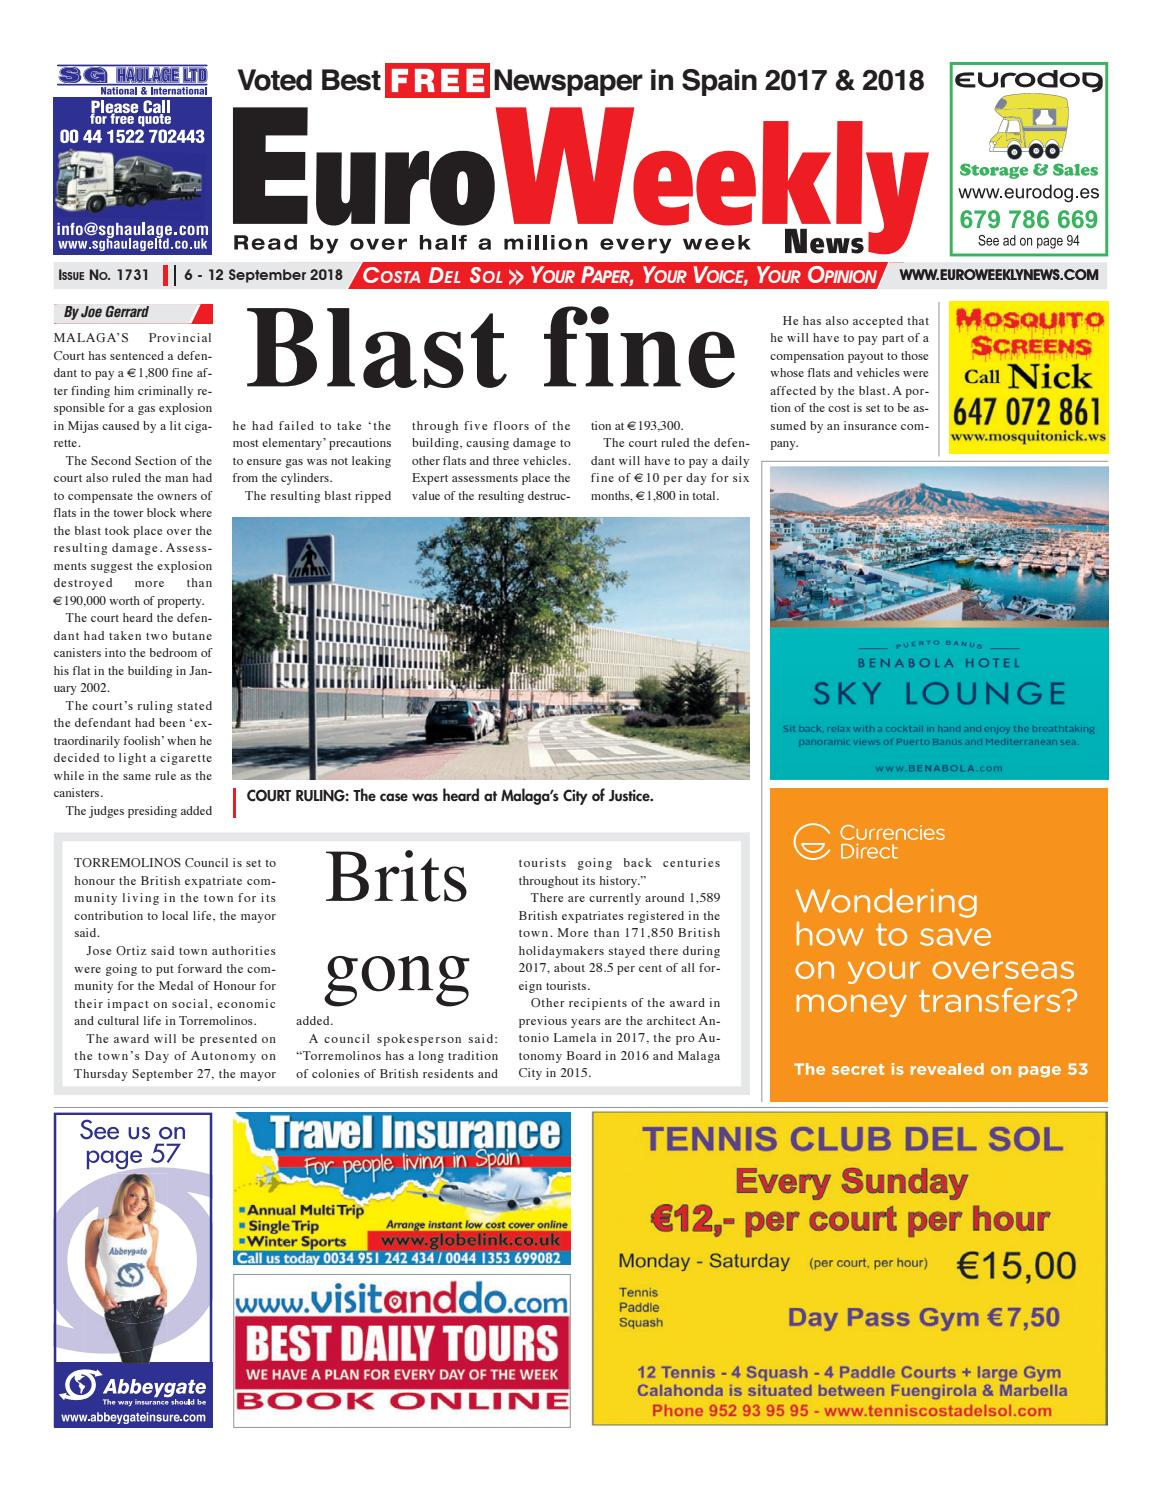 b7a78c318 Euro Weekly News - Costa del Sol 6 - 12 September 2018 Issue 1731 by Euro  Weekly News Media S.A. - issuu